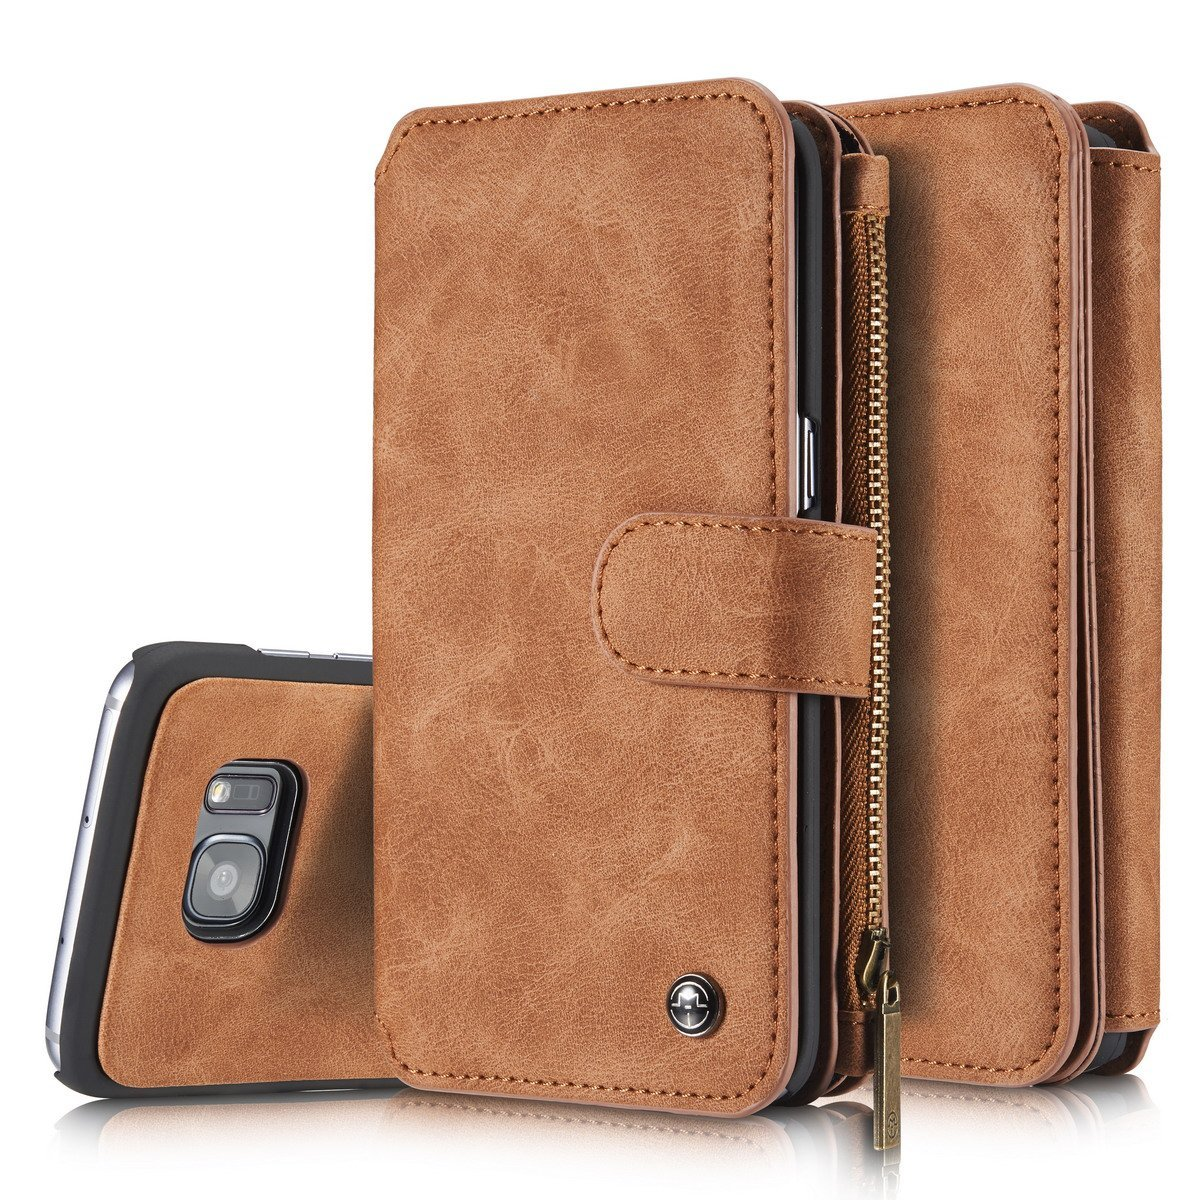 buy popular 627e6 17194 Samsung Galaxy S7 EDGE Leather Wallet Case Brown-14 Card Slots